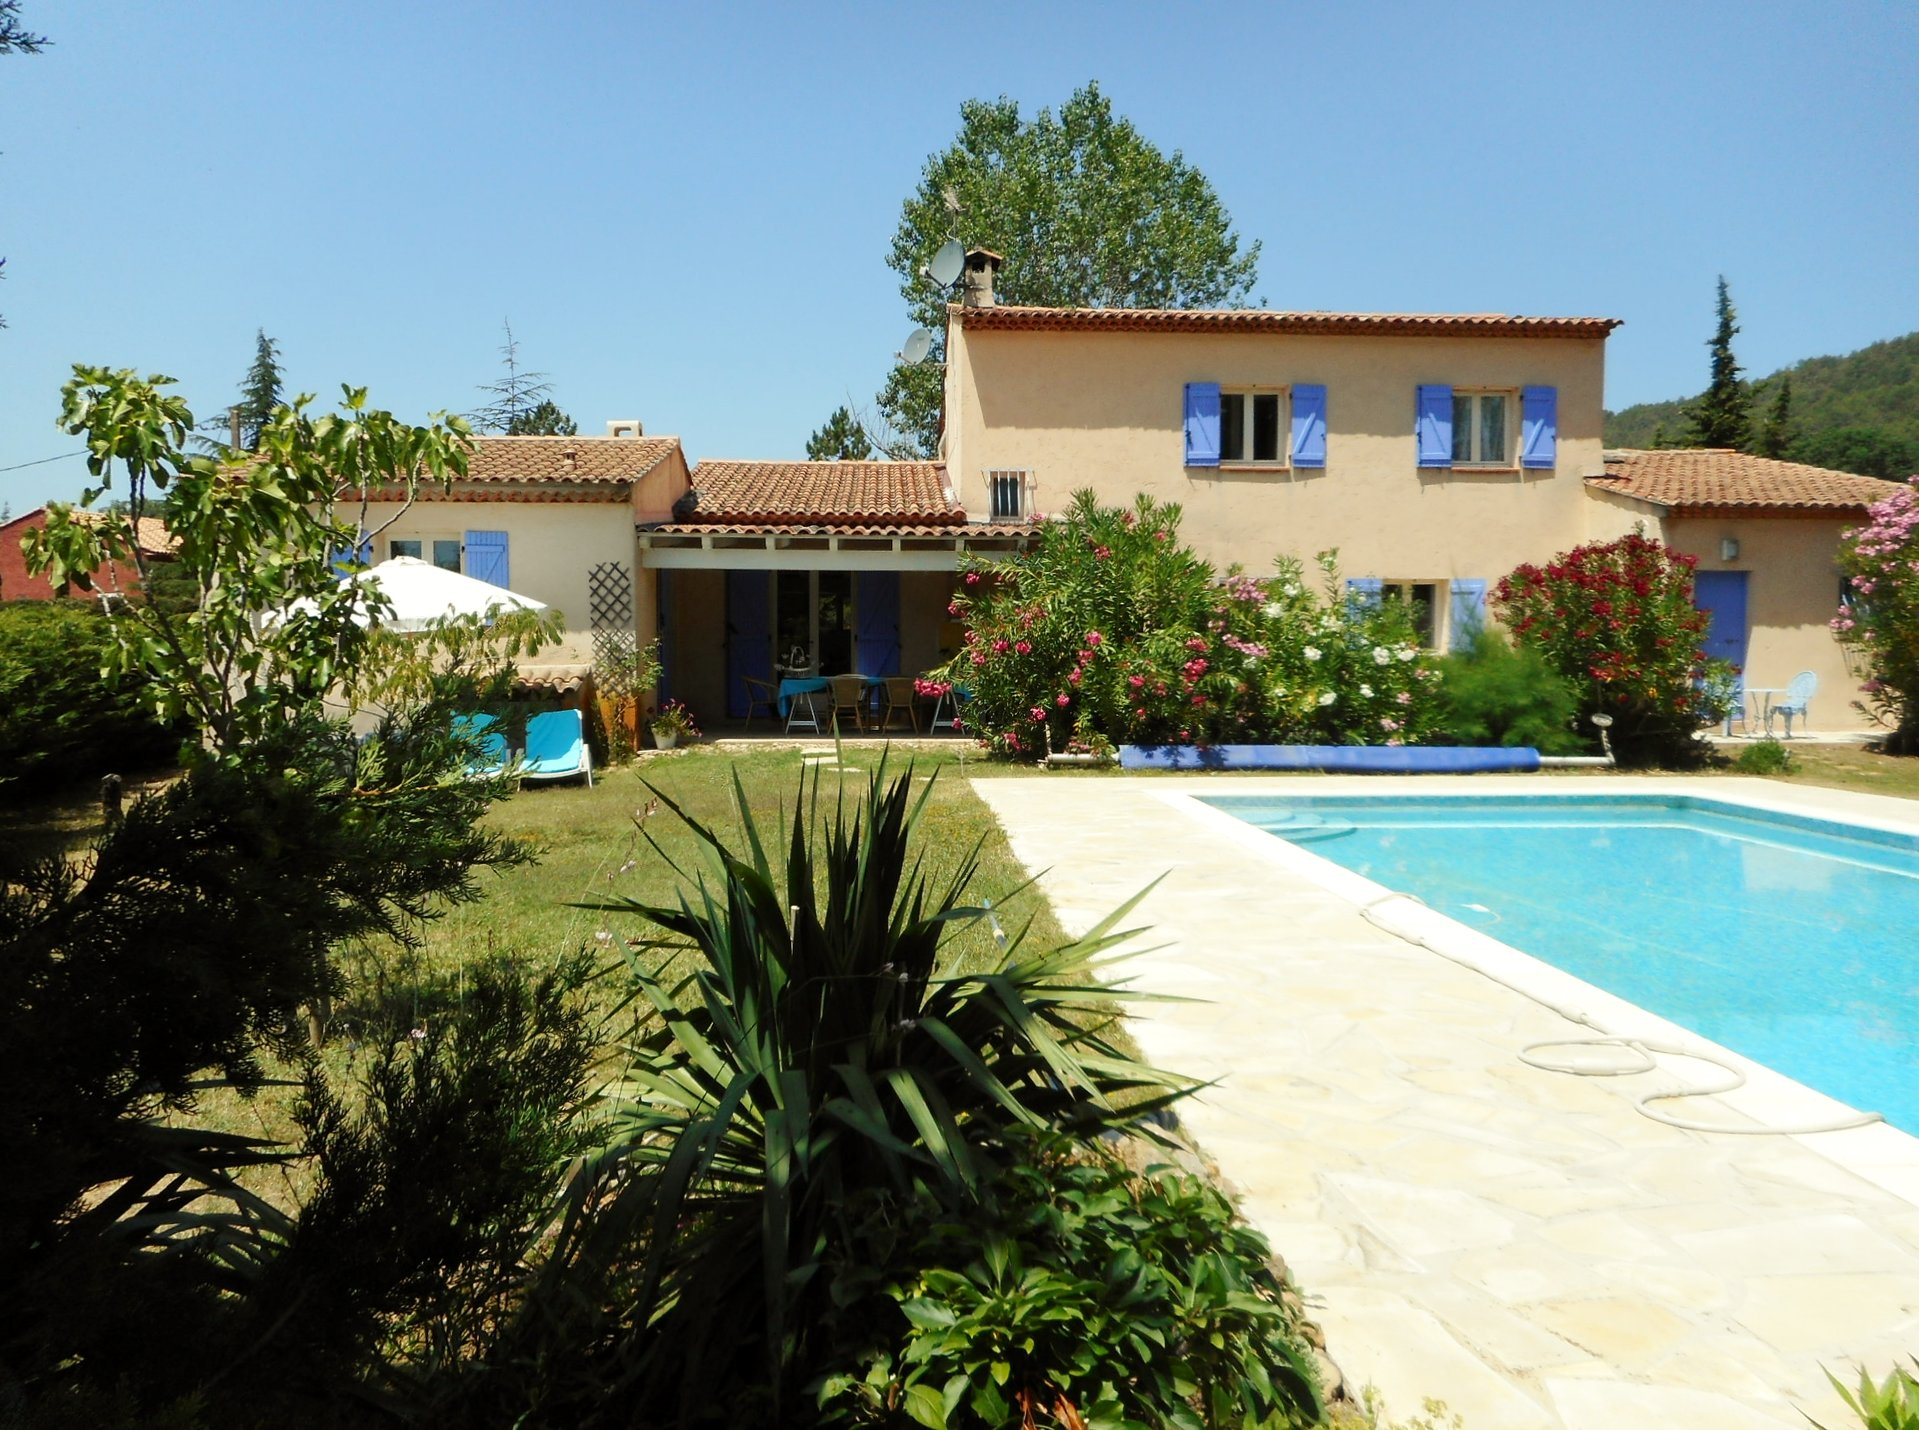 Spacious villa with guest house and swimming pool